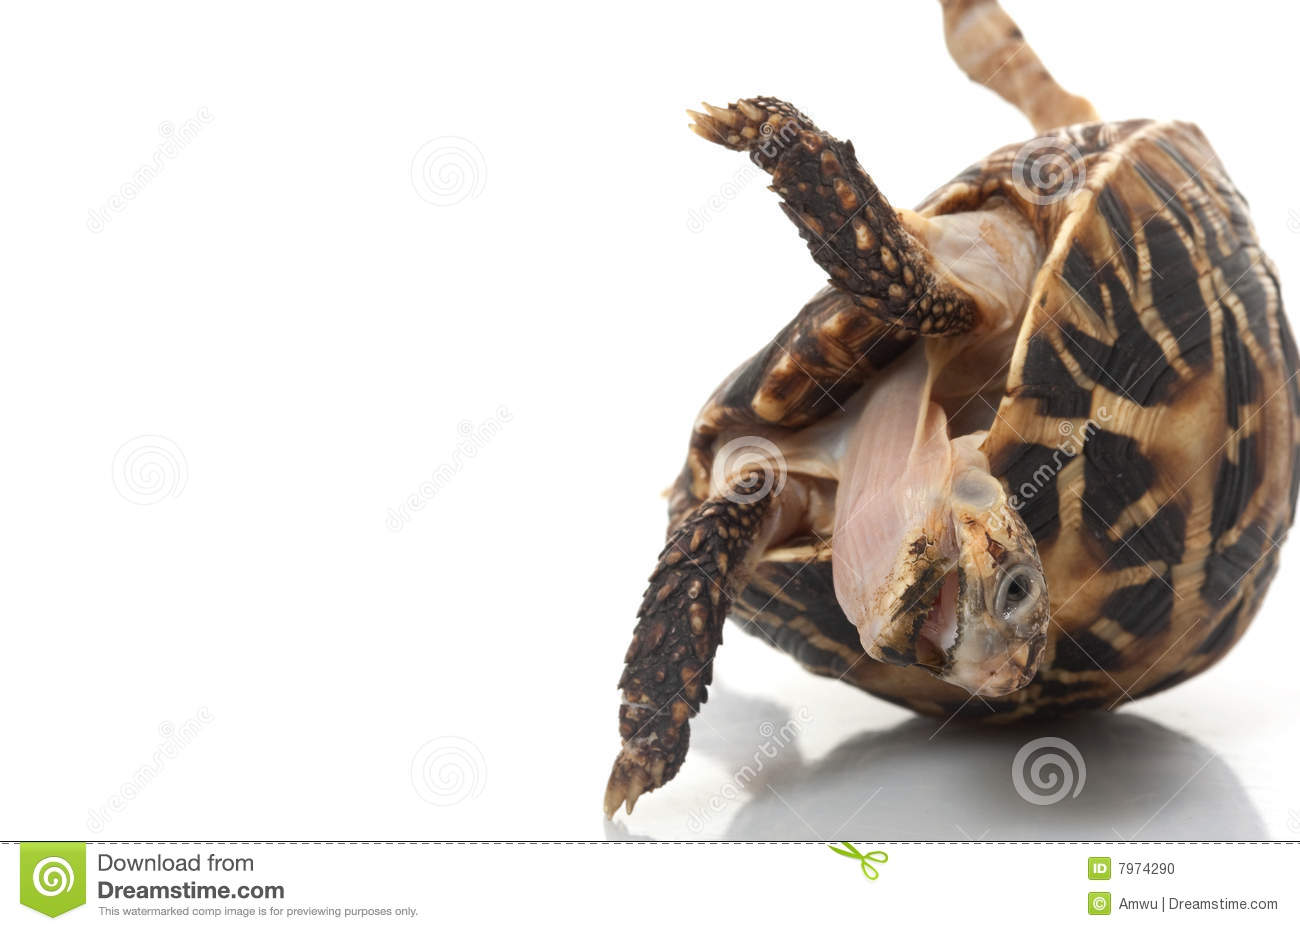 Indian Star Tortoise clipart #16, Download drawings